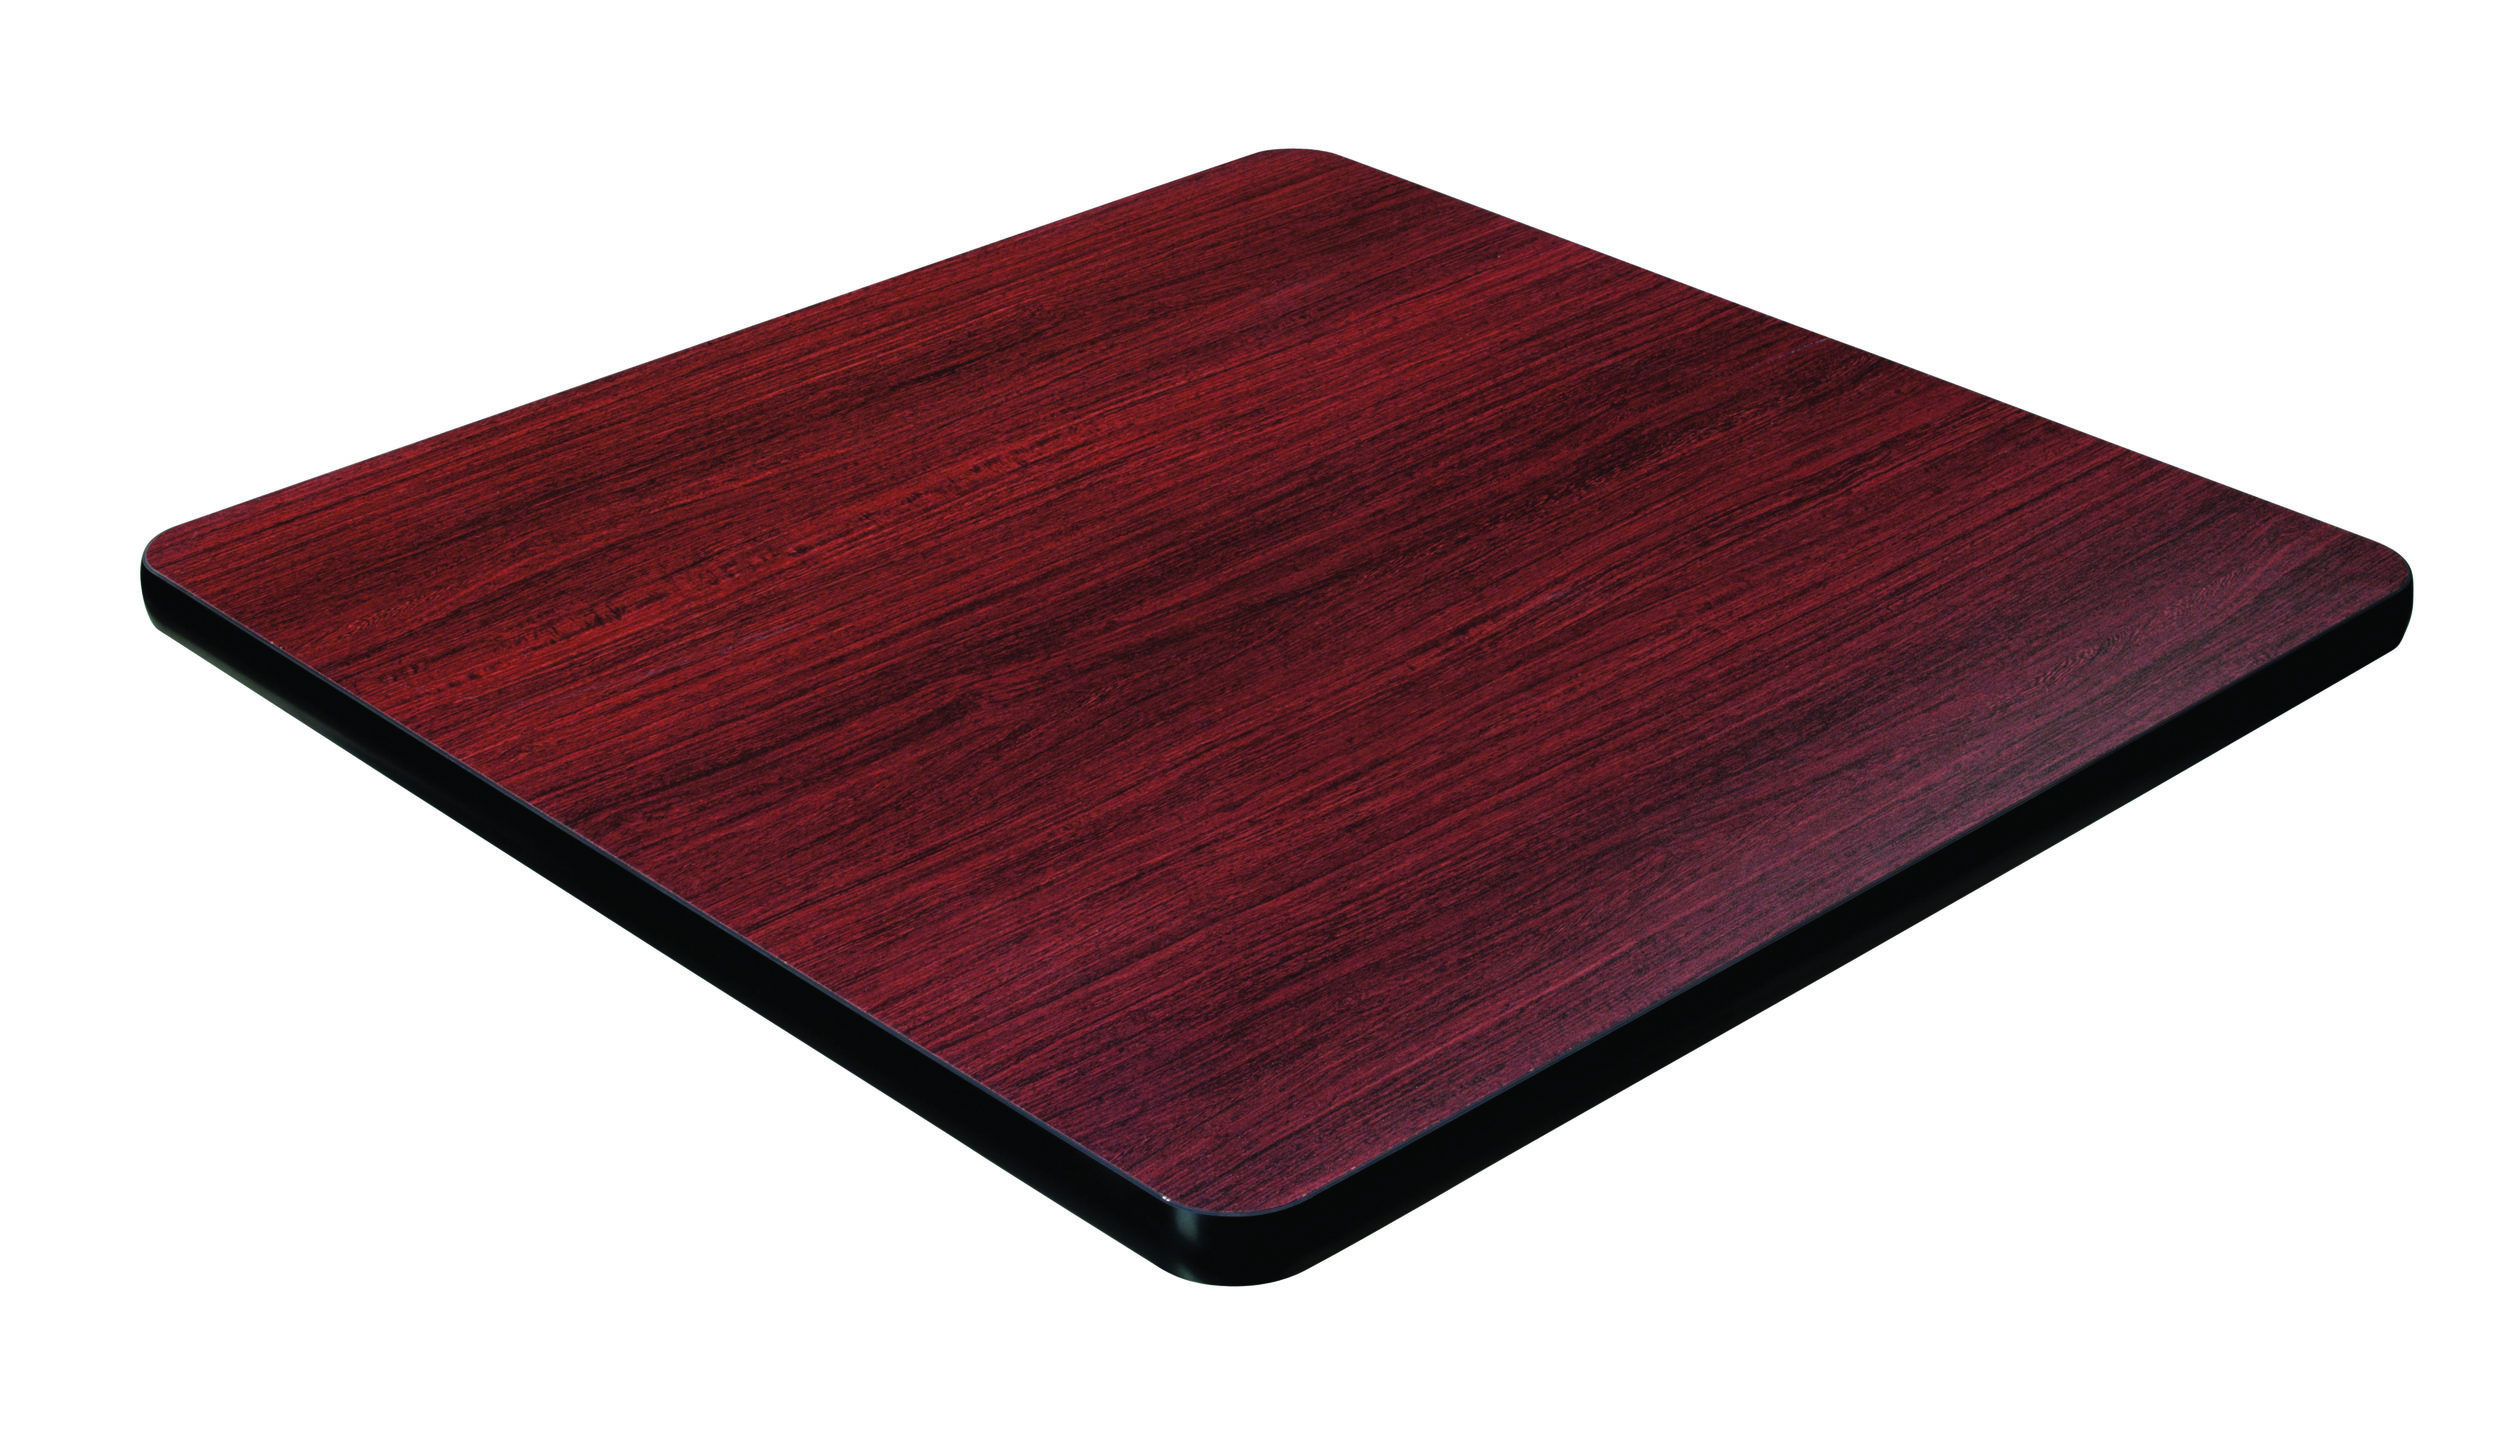 T55 - Laminate Reverse Table Top